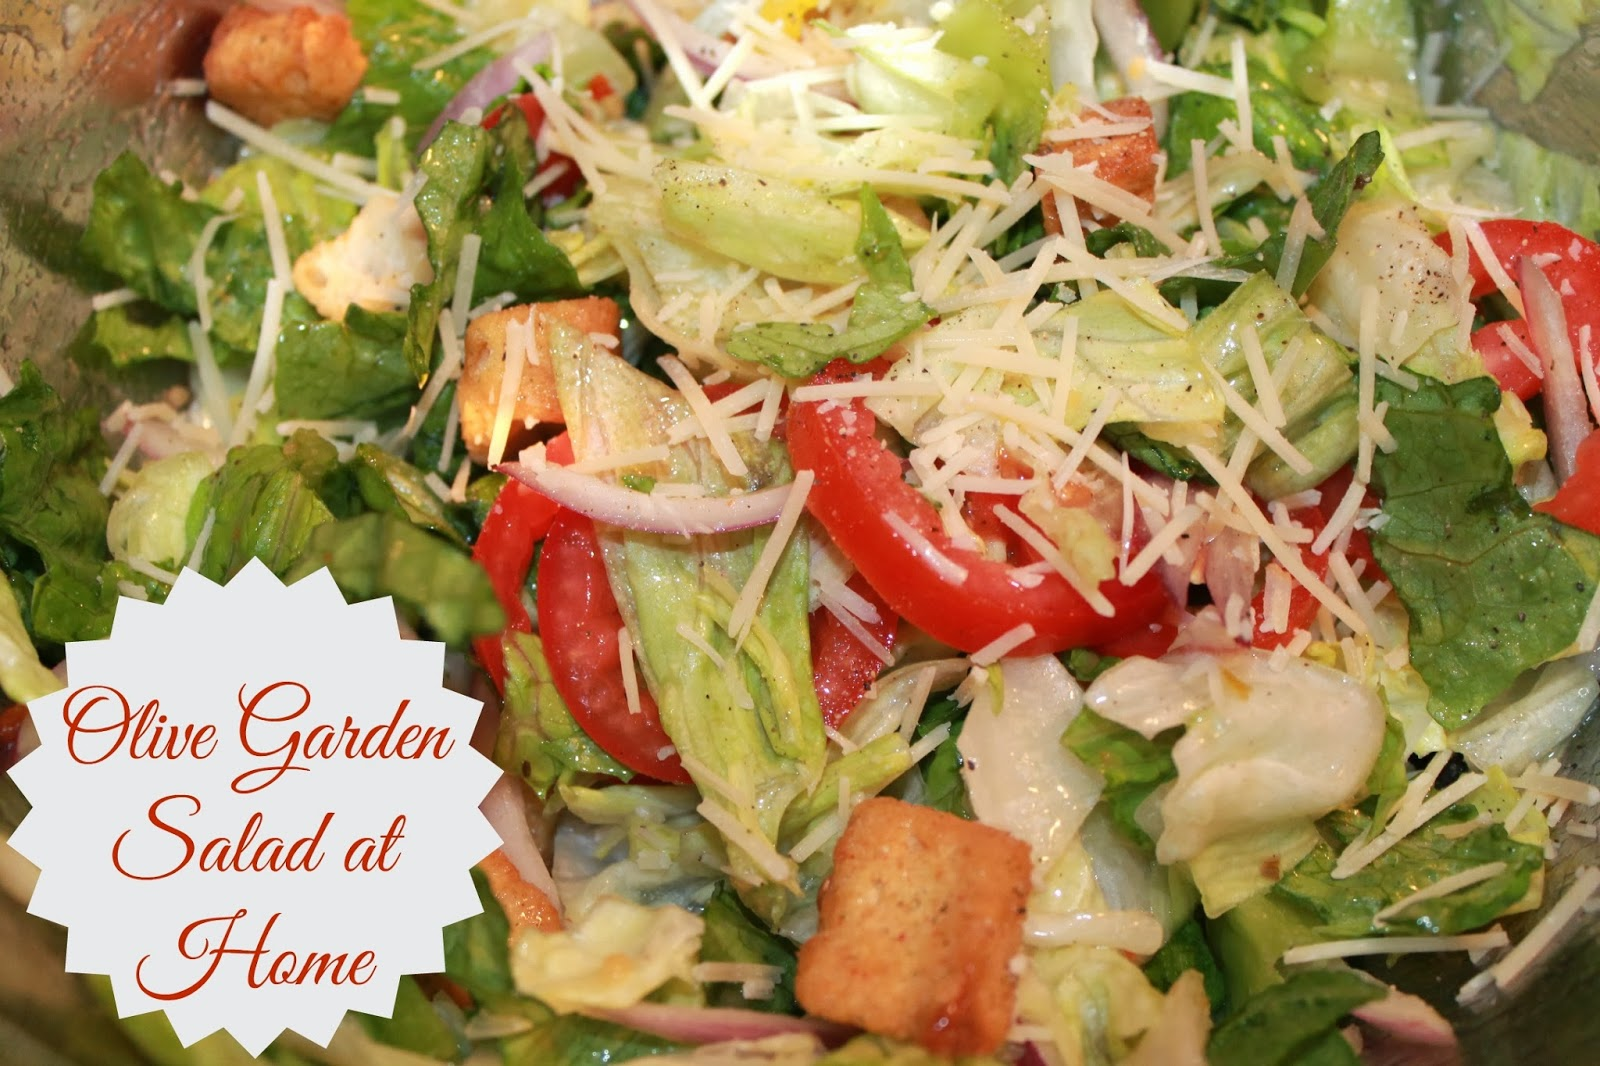 Polka Dotty Place Olive Garden Salad At Home